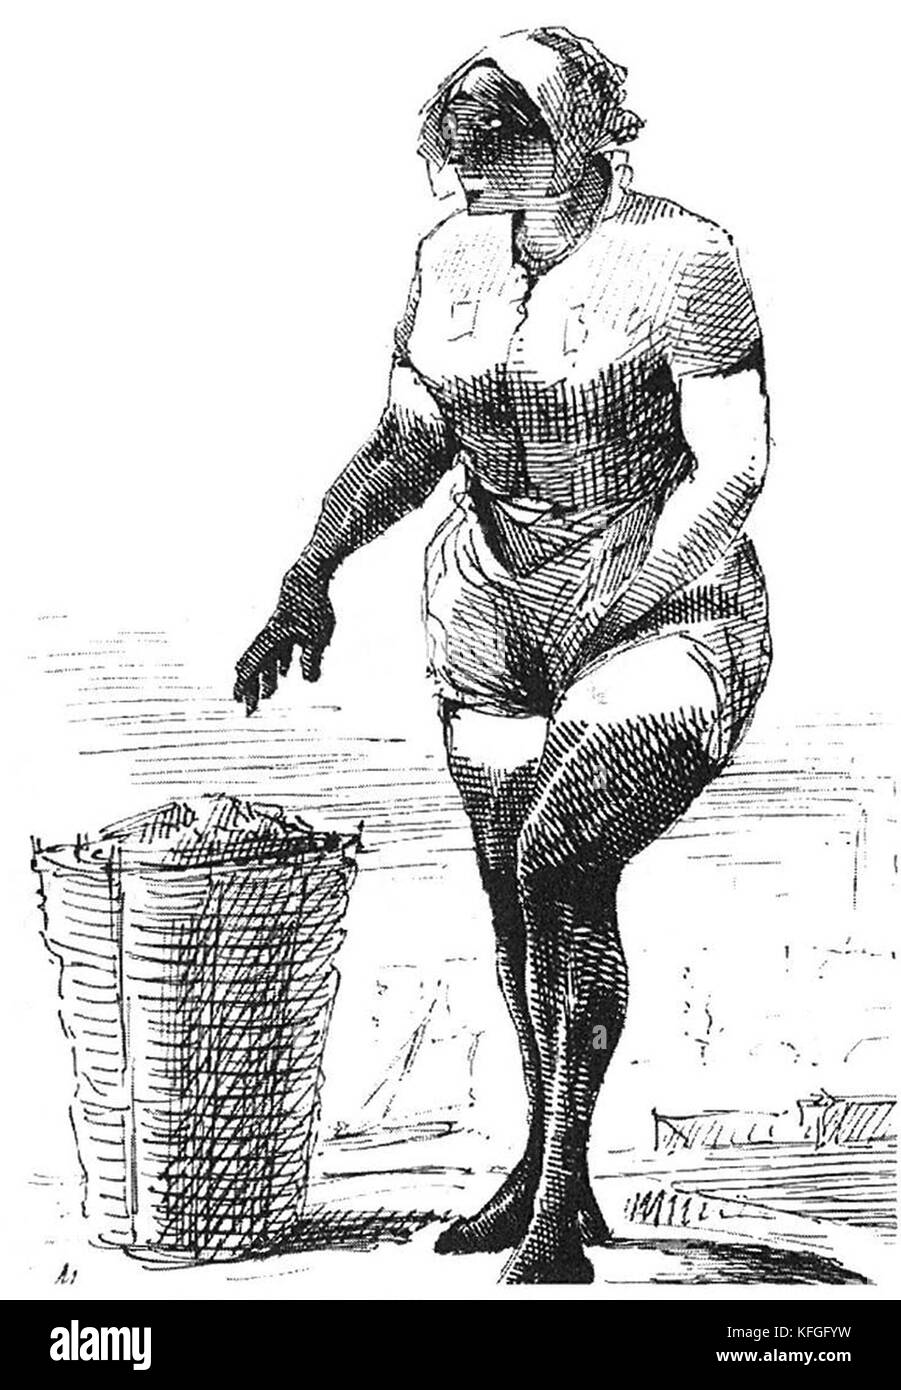 Mudlark, someone who scavenges in river mud for items of value, a term used especially to describe those who scavenged - Stock Image